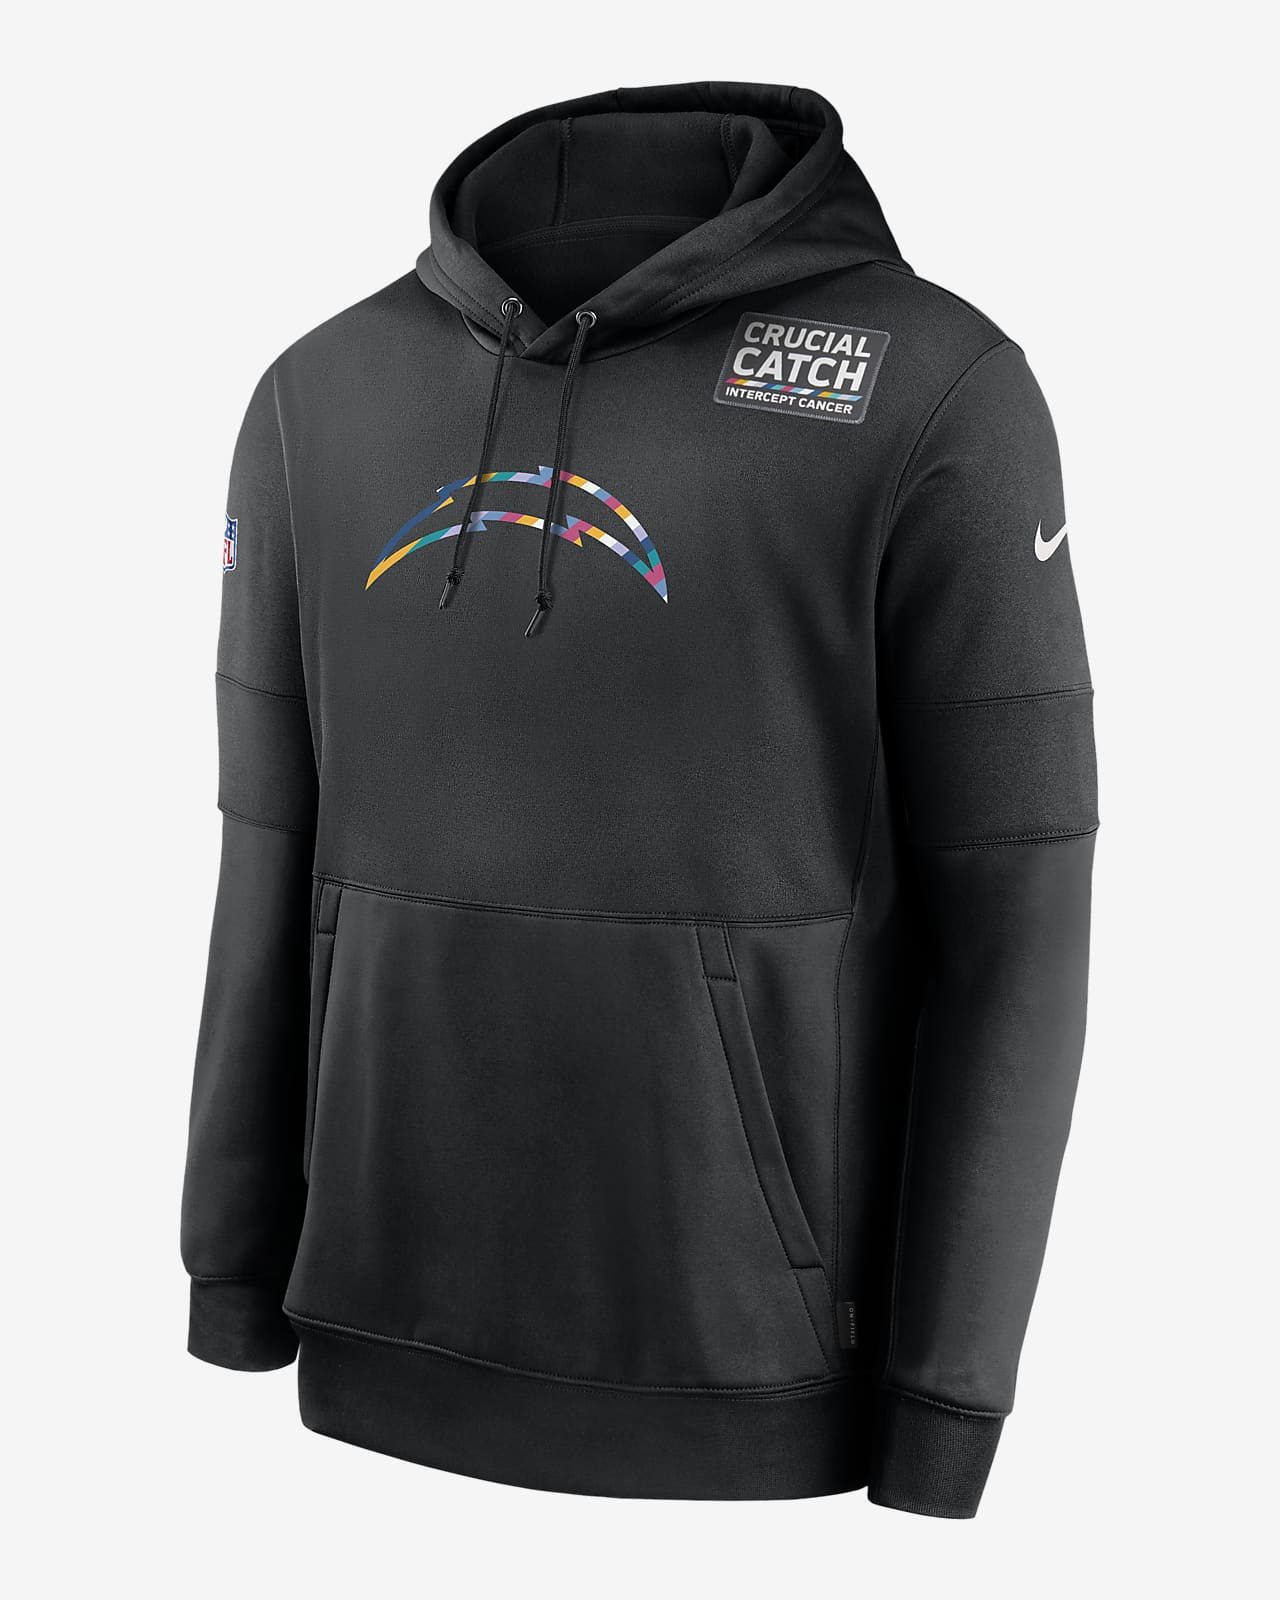 Nike Therma Crucial Catch (NFL Chargers) Men's Hoodie